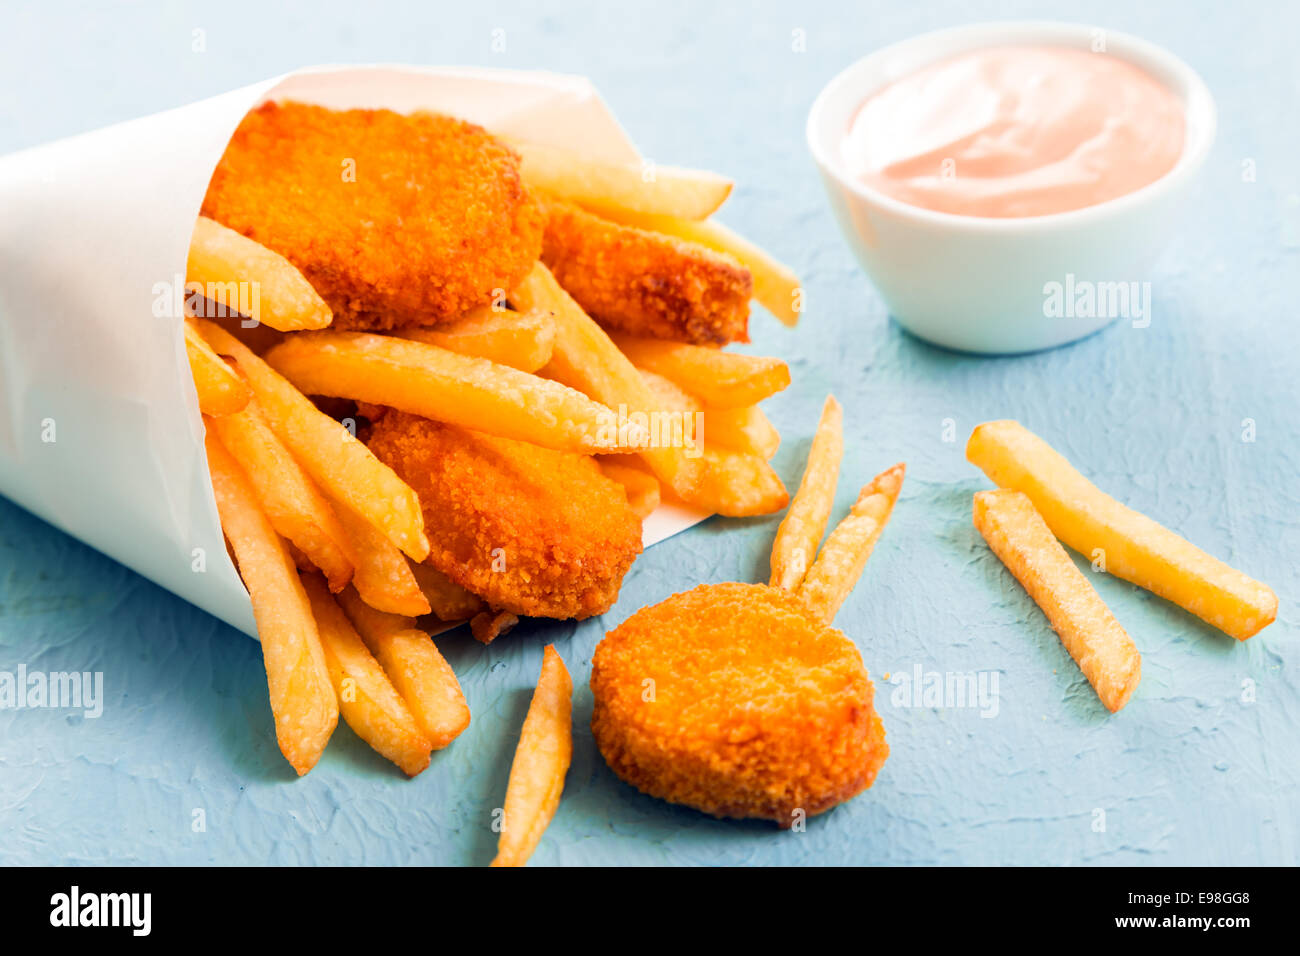 Fried fish nuggets with golden French fries spilling out of a paper cone from a takeaway fish shop onto a blue surface, - Stock Image